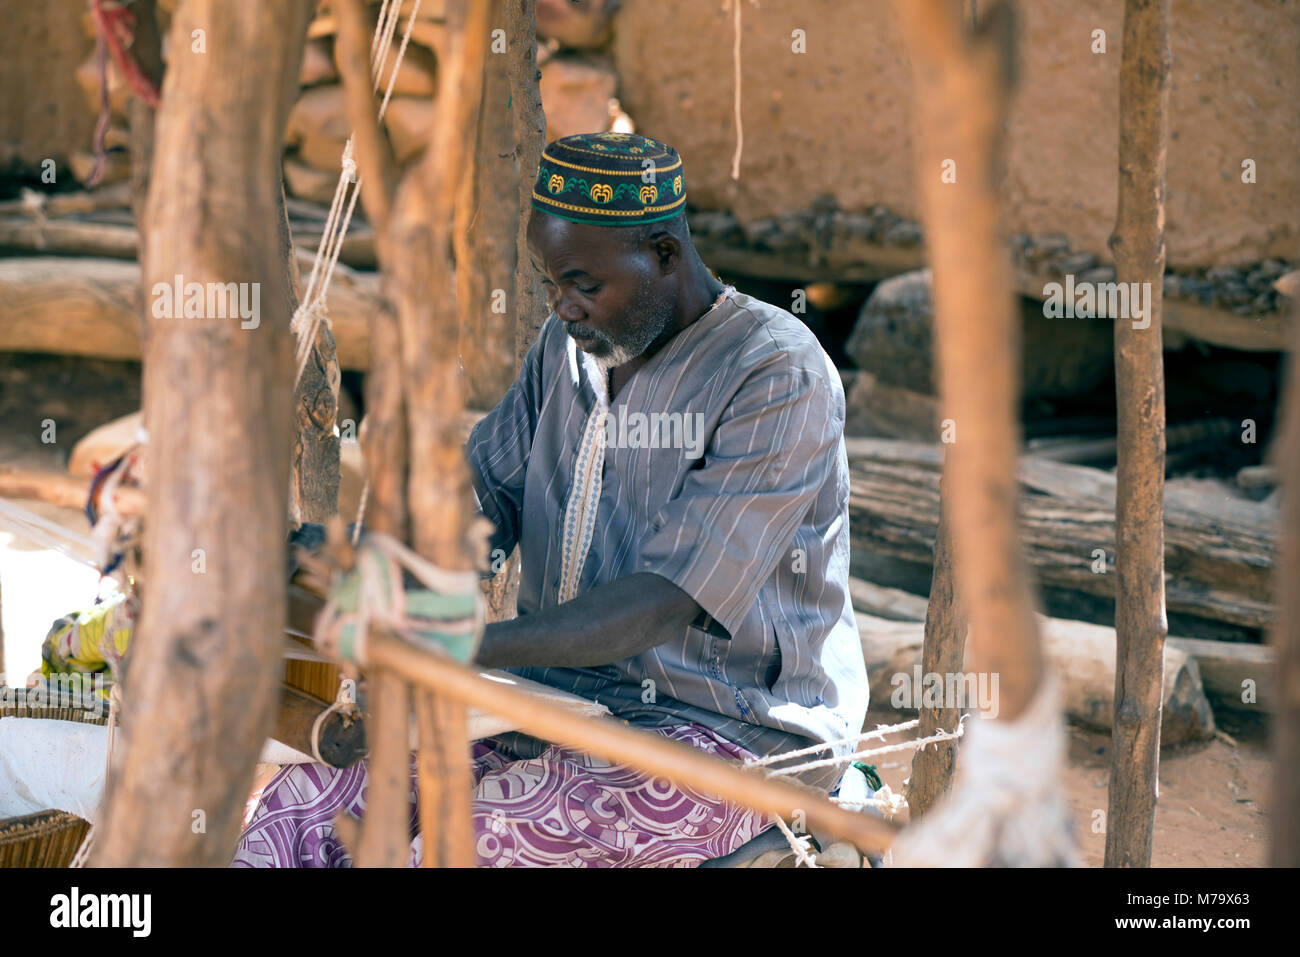 A Dogon man makes his living from weaving cloth. Mali, West Africa. - Stock Image